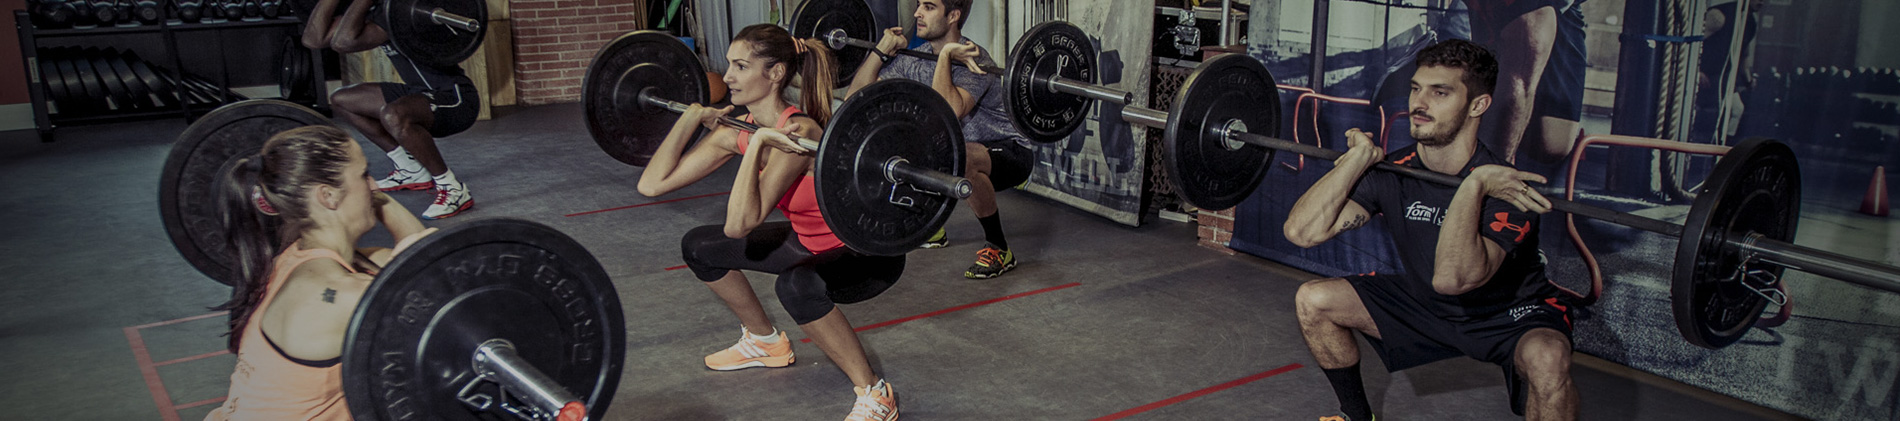 crossfit toulouse